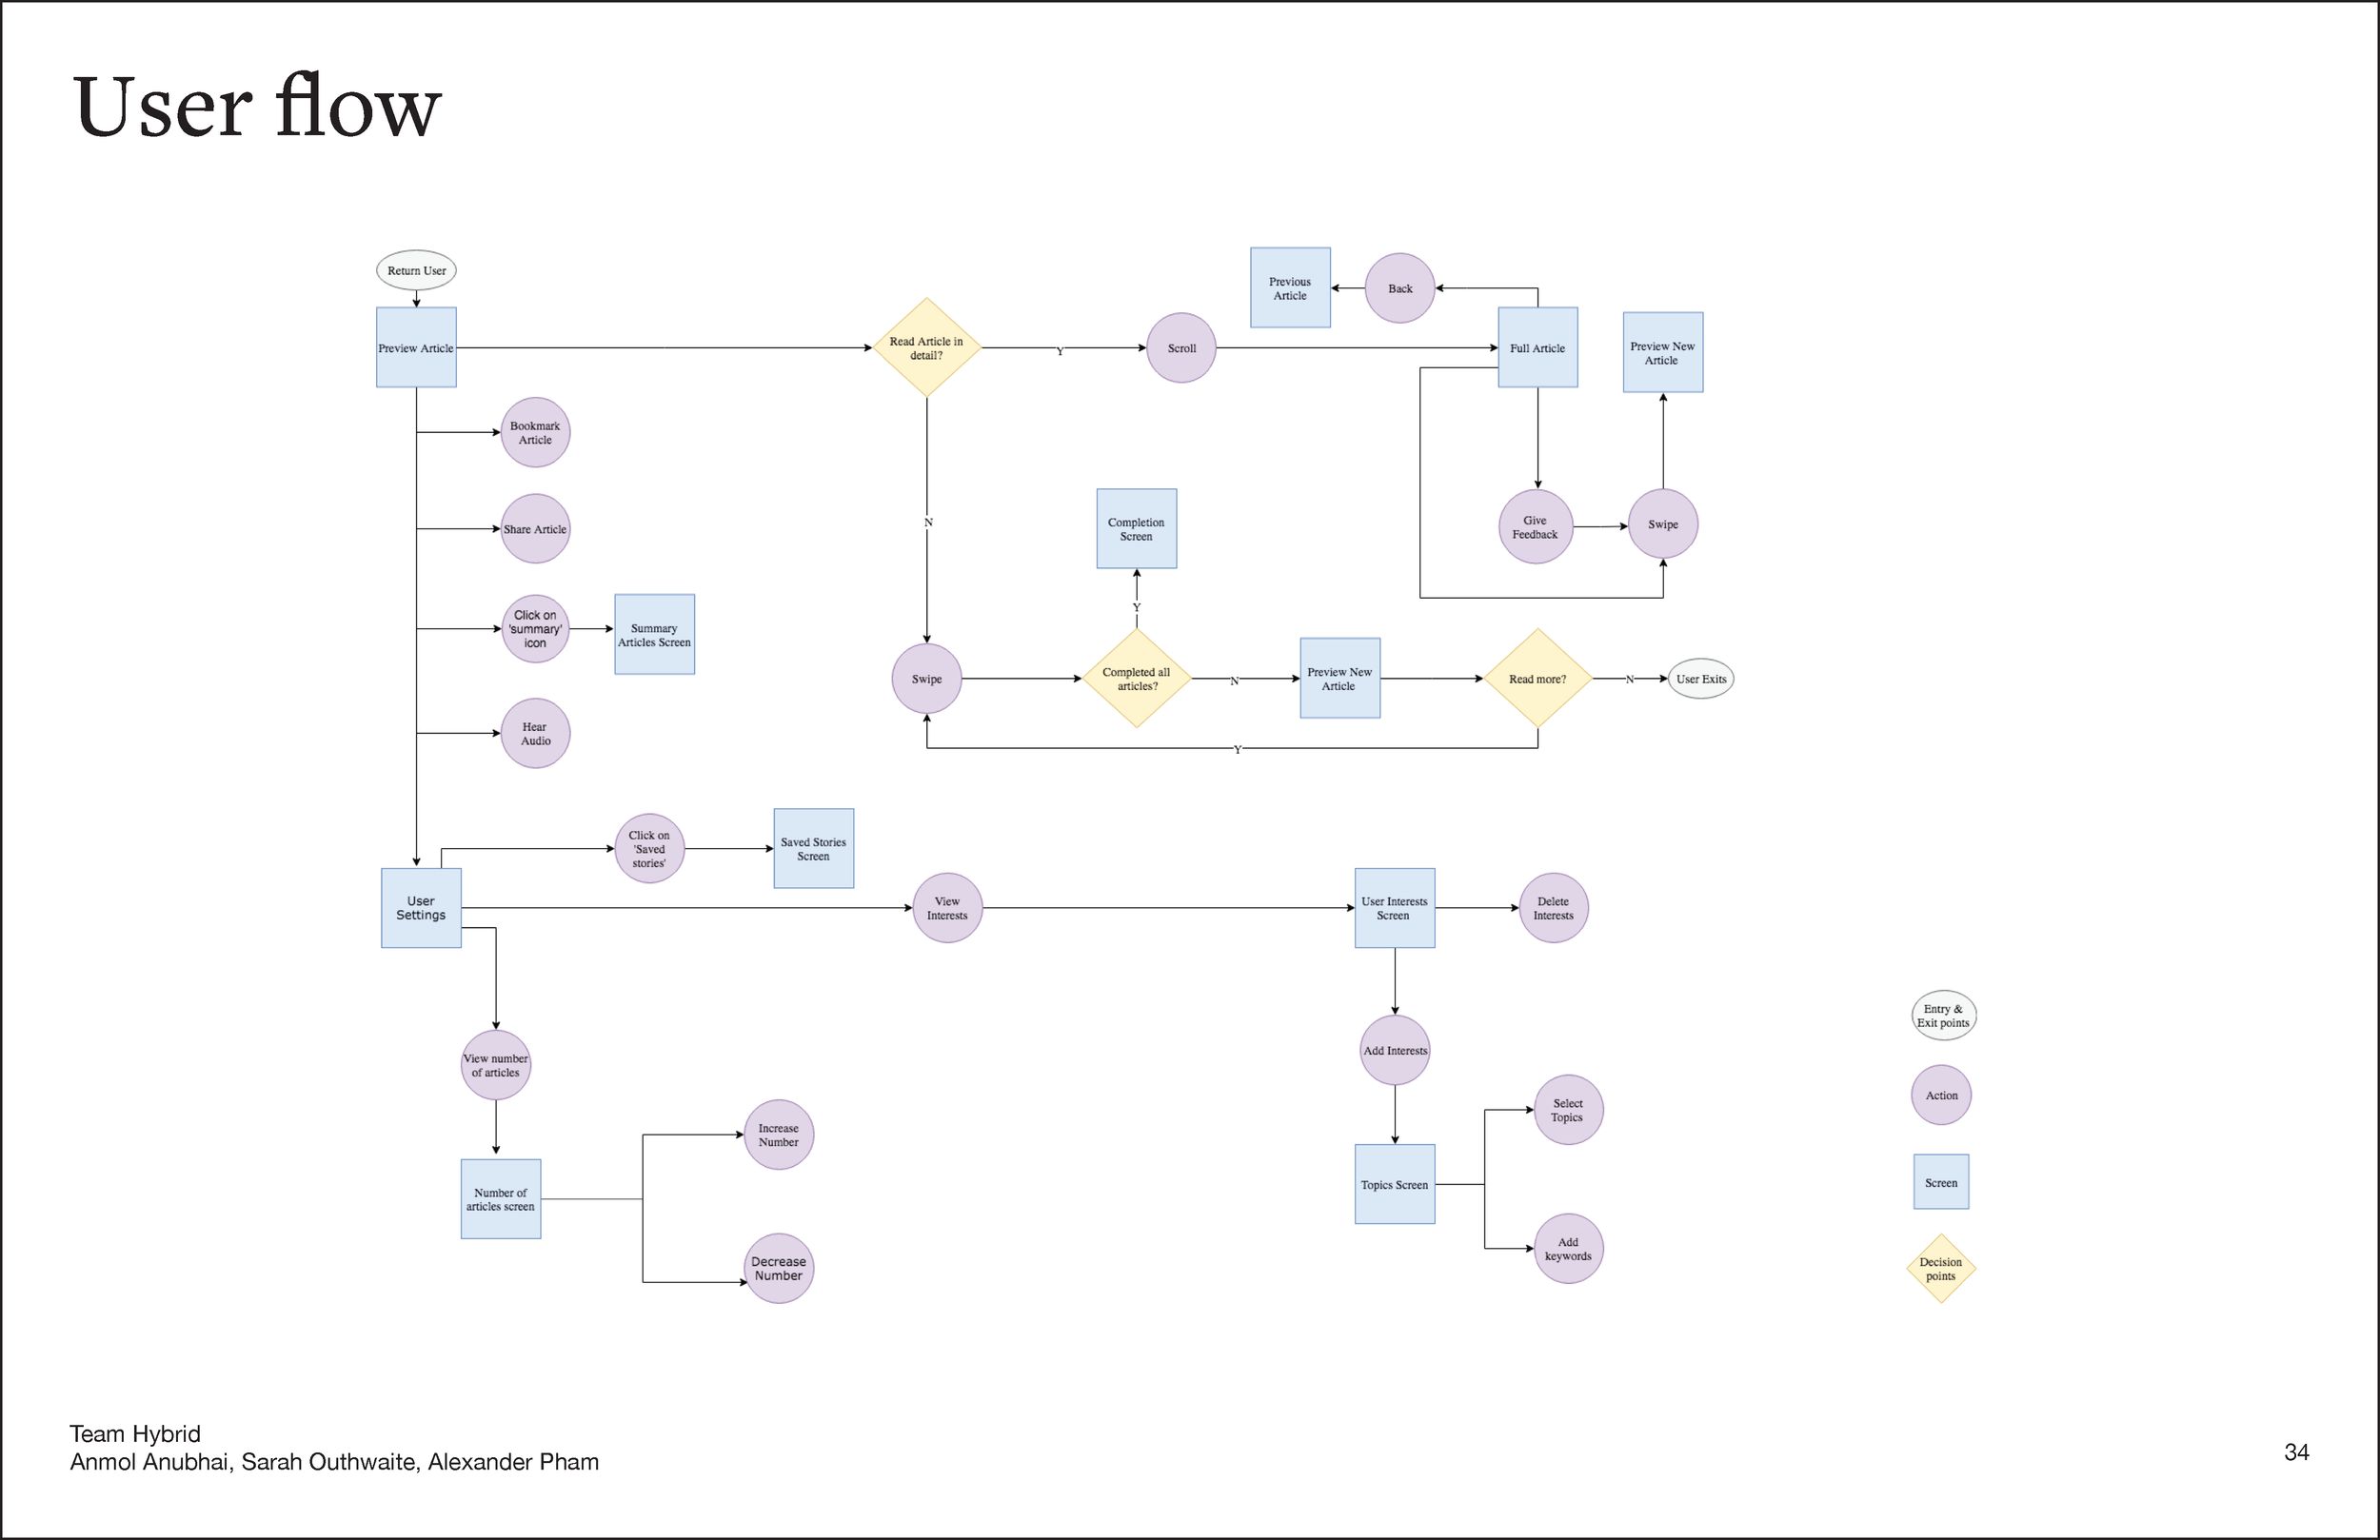 The final user flow for our application